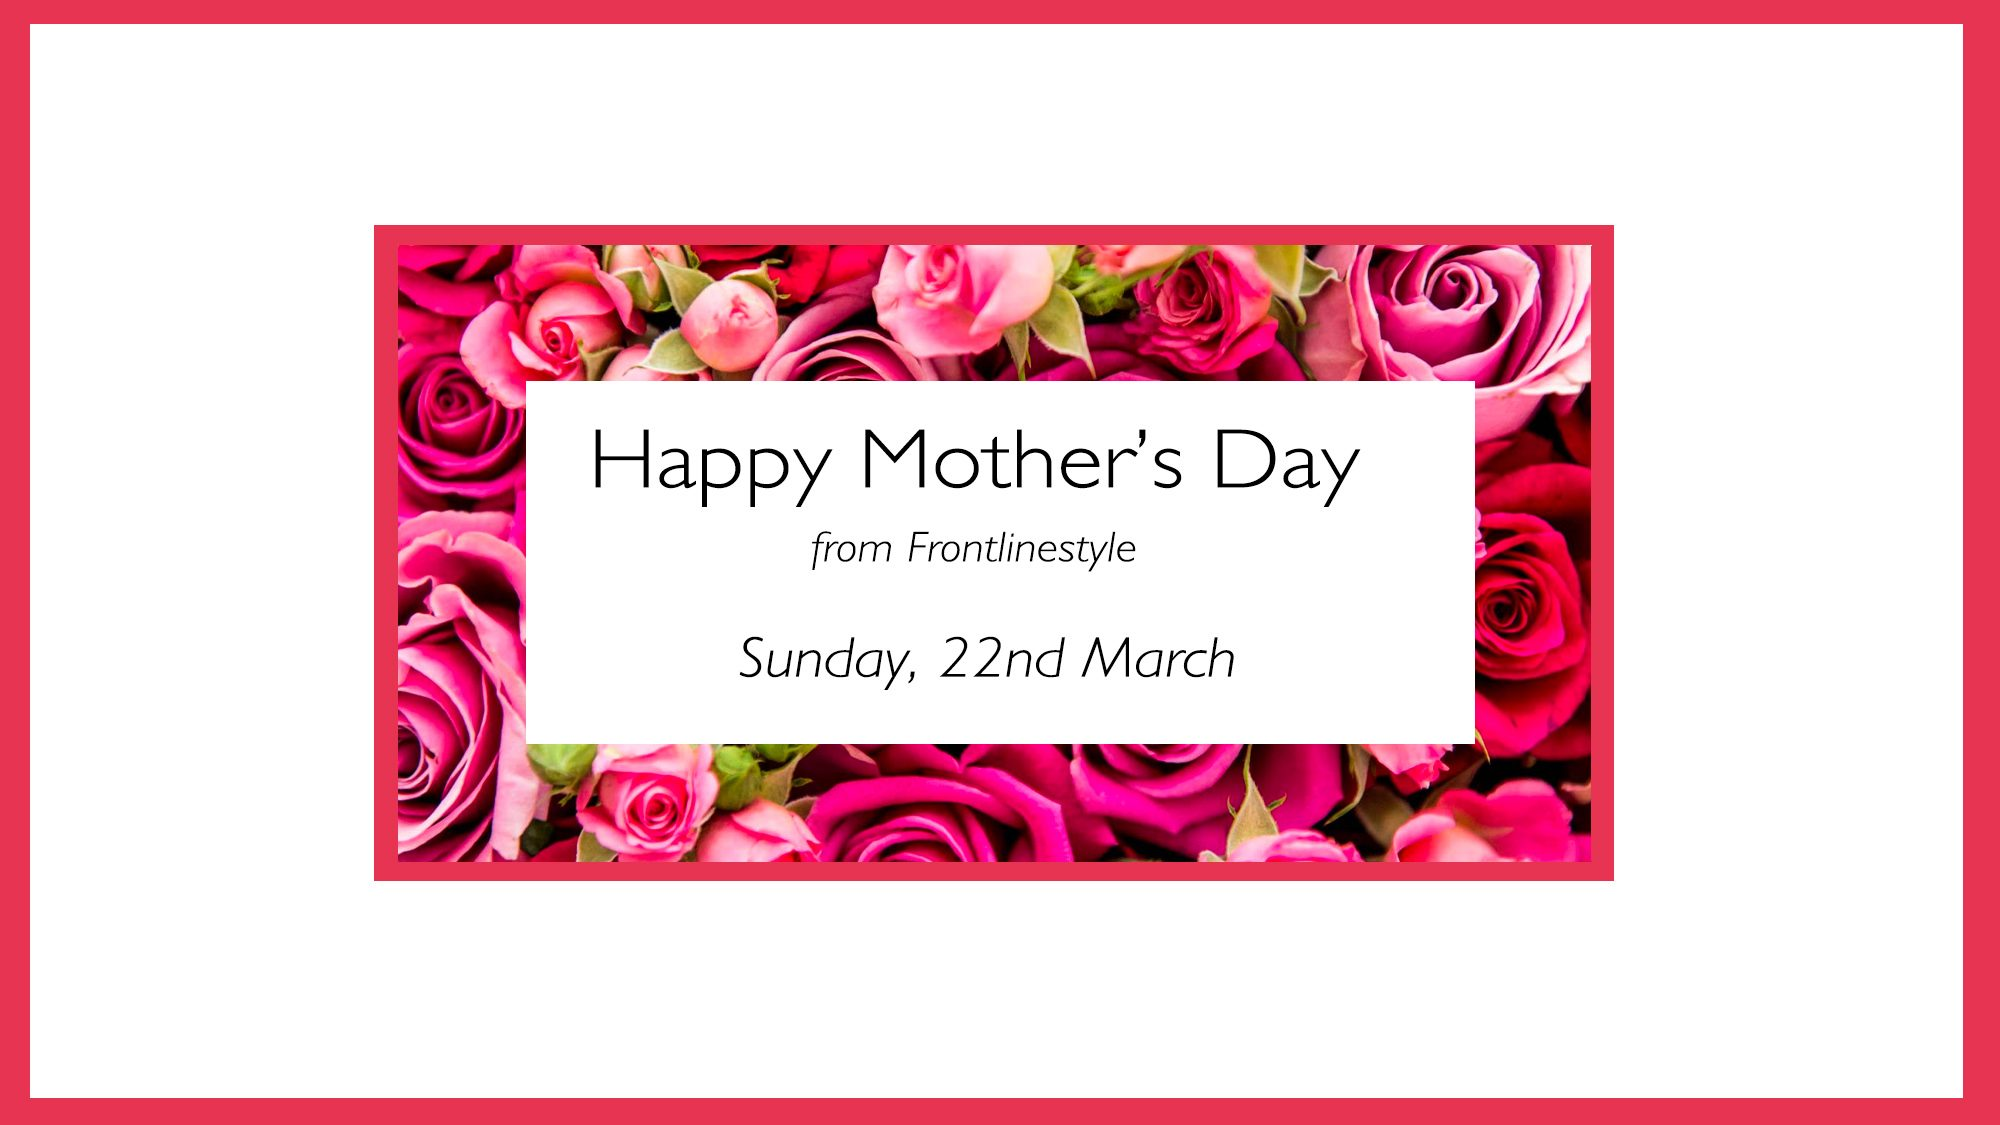 Mother's Day from Frontlinestyle